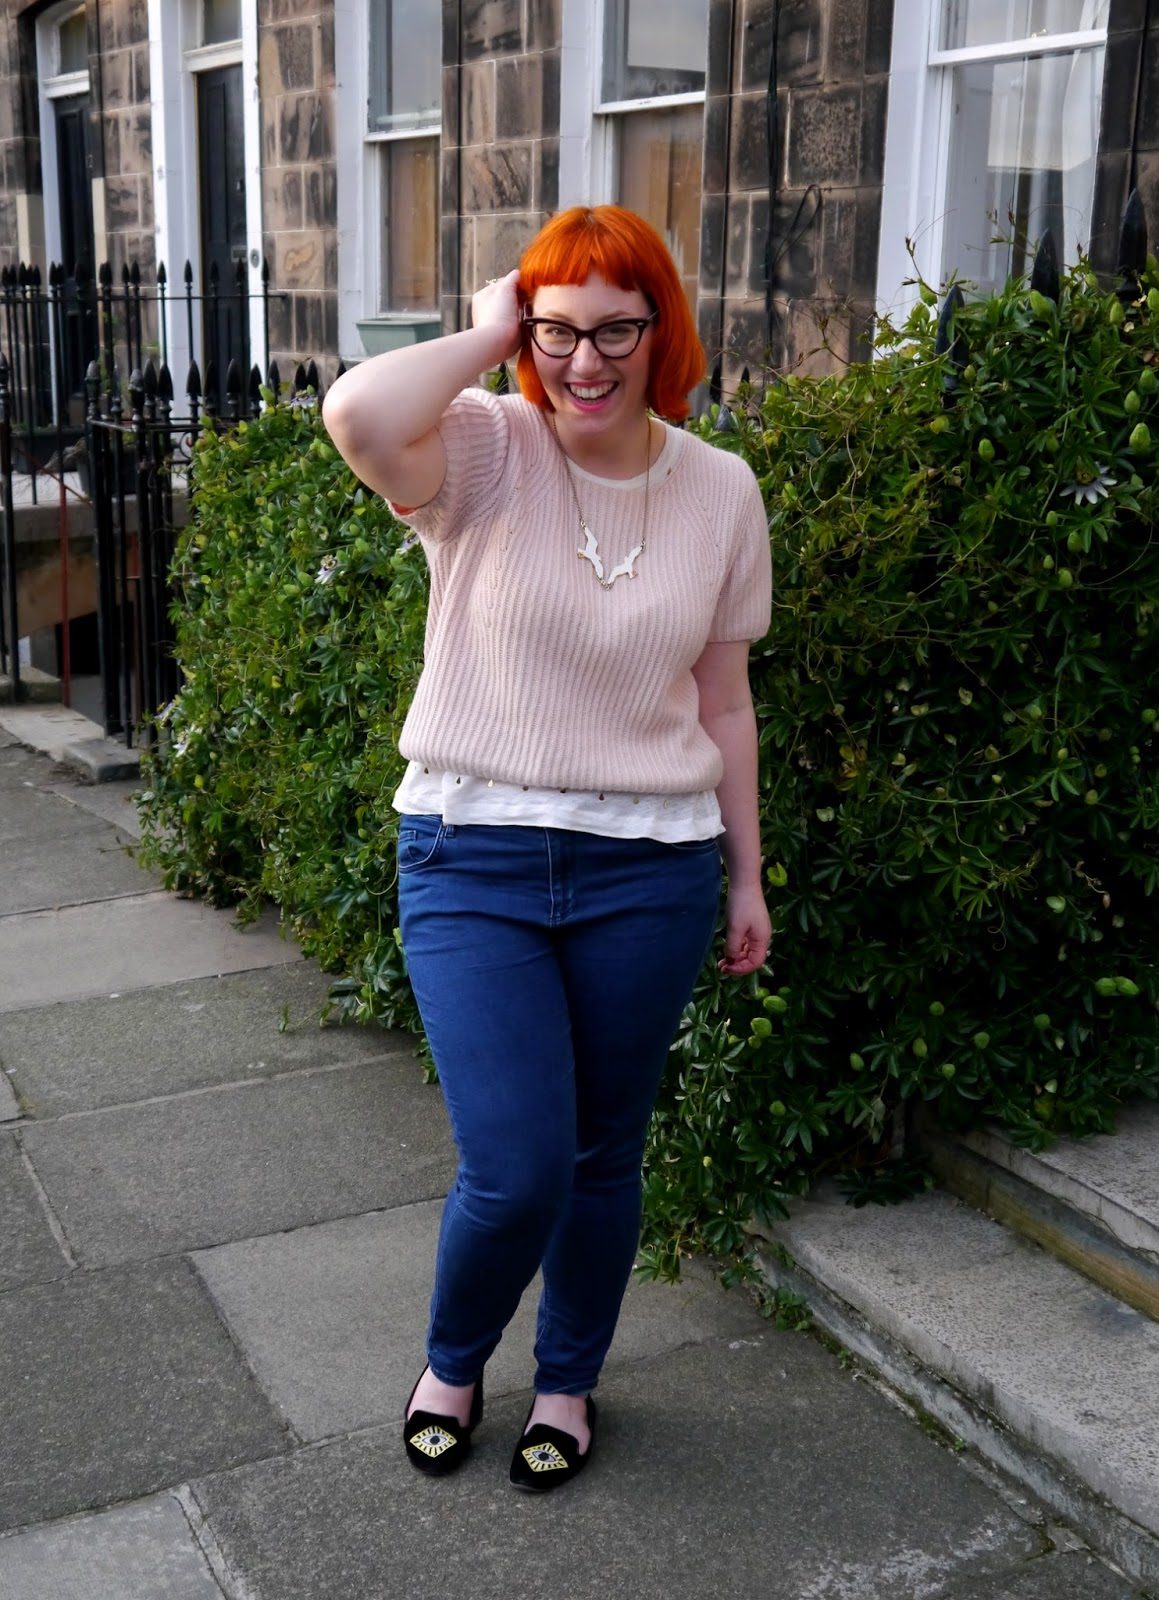 Scottish blogger, red head, red hair, ginger, cate eye glasses, Edinburgh blogger, Edinburgh street style, causal street style, pink topshop jumper, Zara tshirt, Monki shoes, slipper shoes, flat shoes, Topshop jeas, indigo jeans, Karne Mabon seagull necklace, Karen Mabon jewellery, Edinburgh